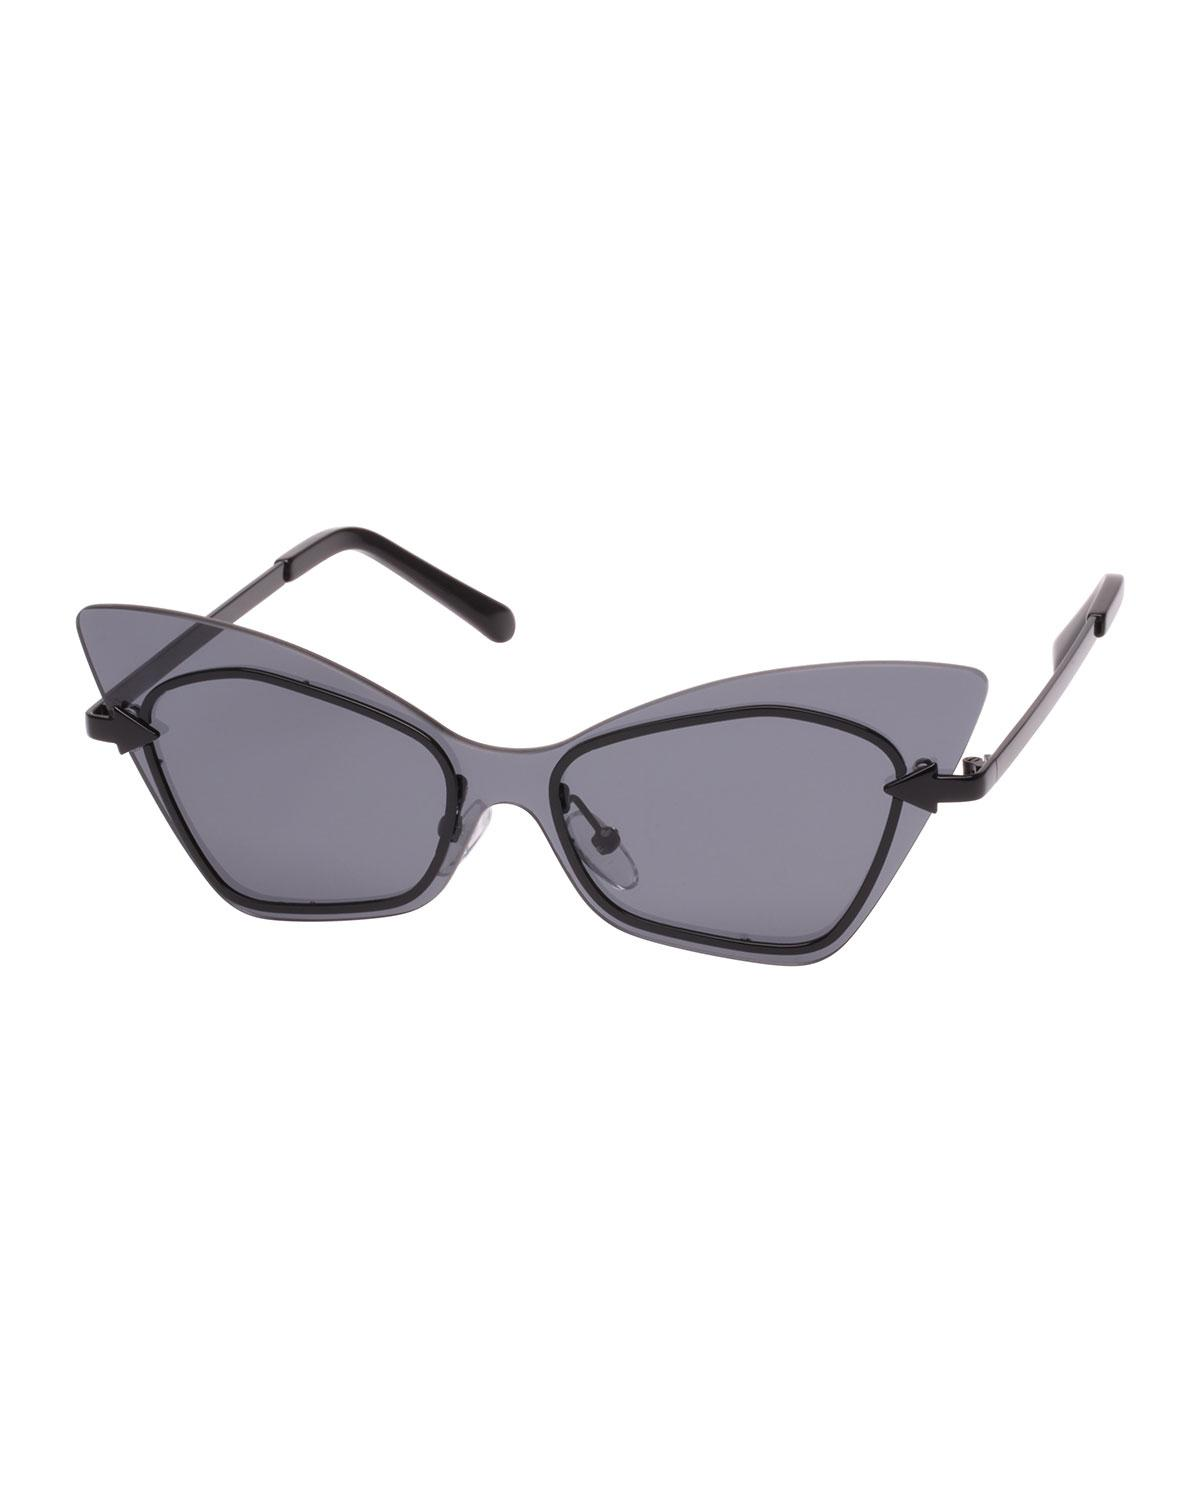 8e28259689c4 Karen Walker. Women s Mrs. Brill Cat-eye Semi-rimless Sunglasses